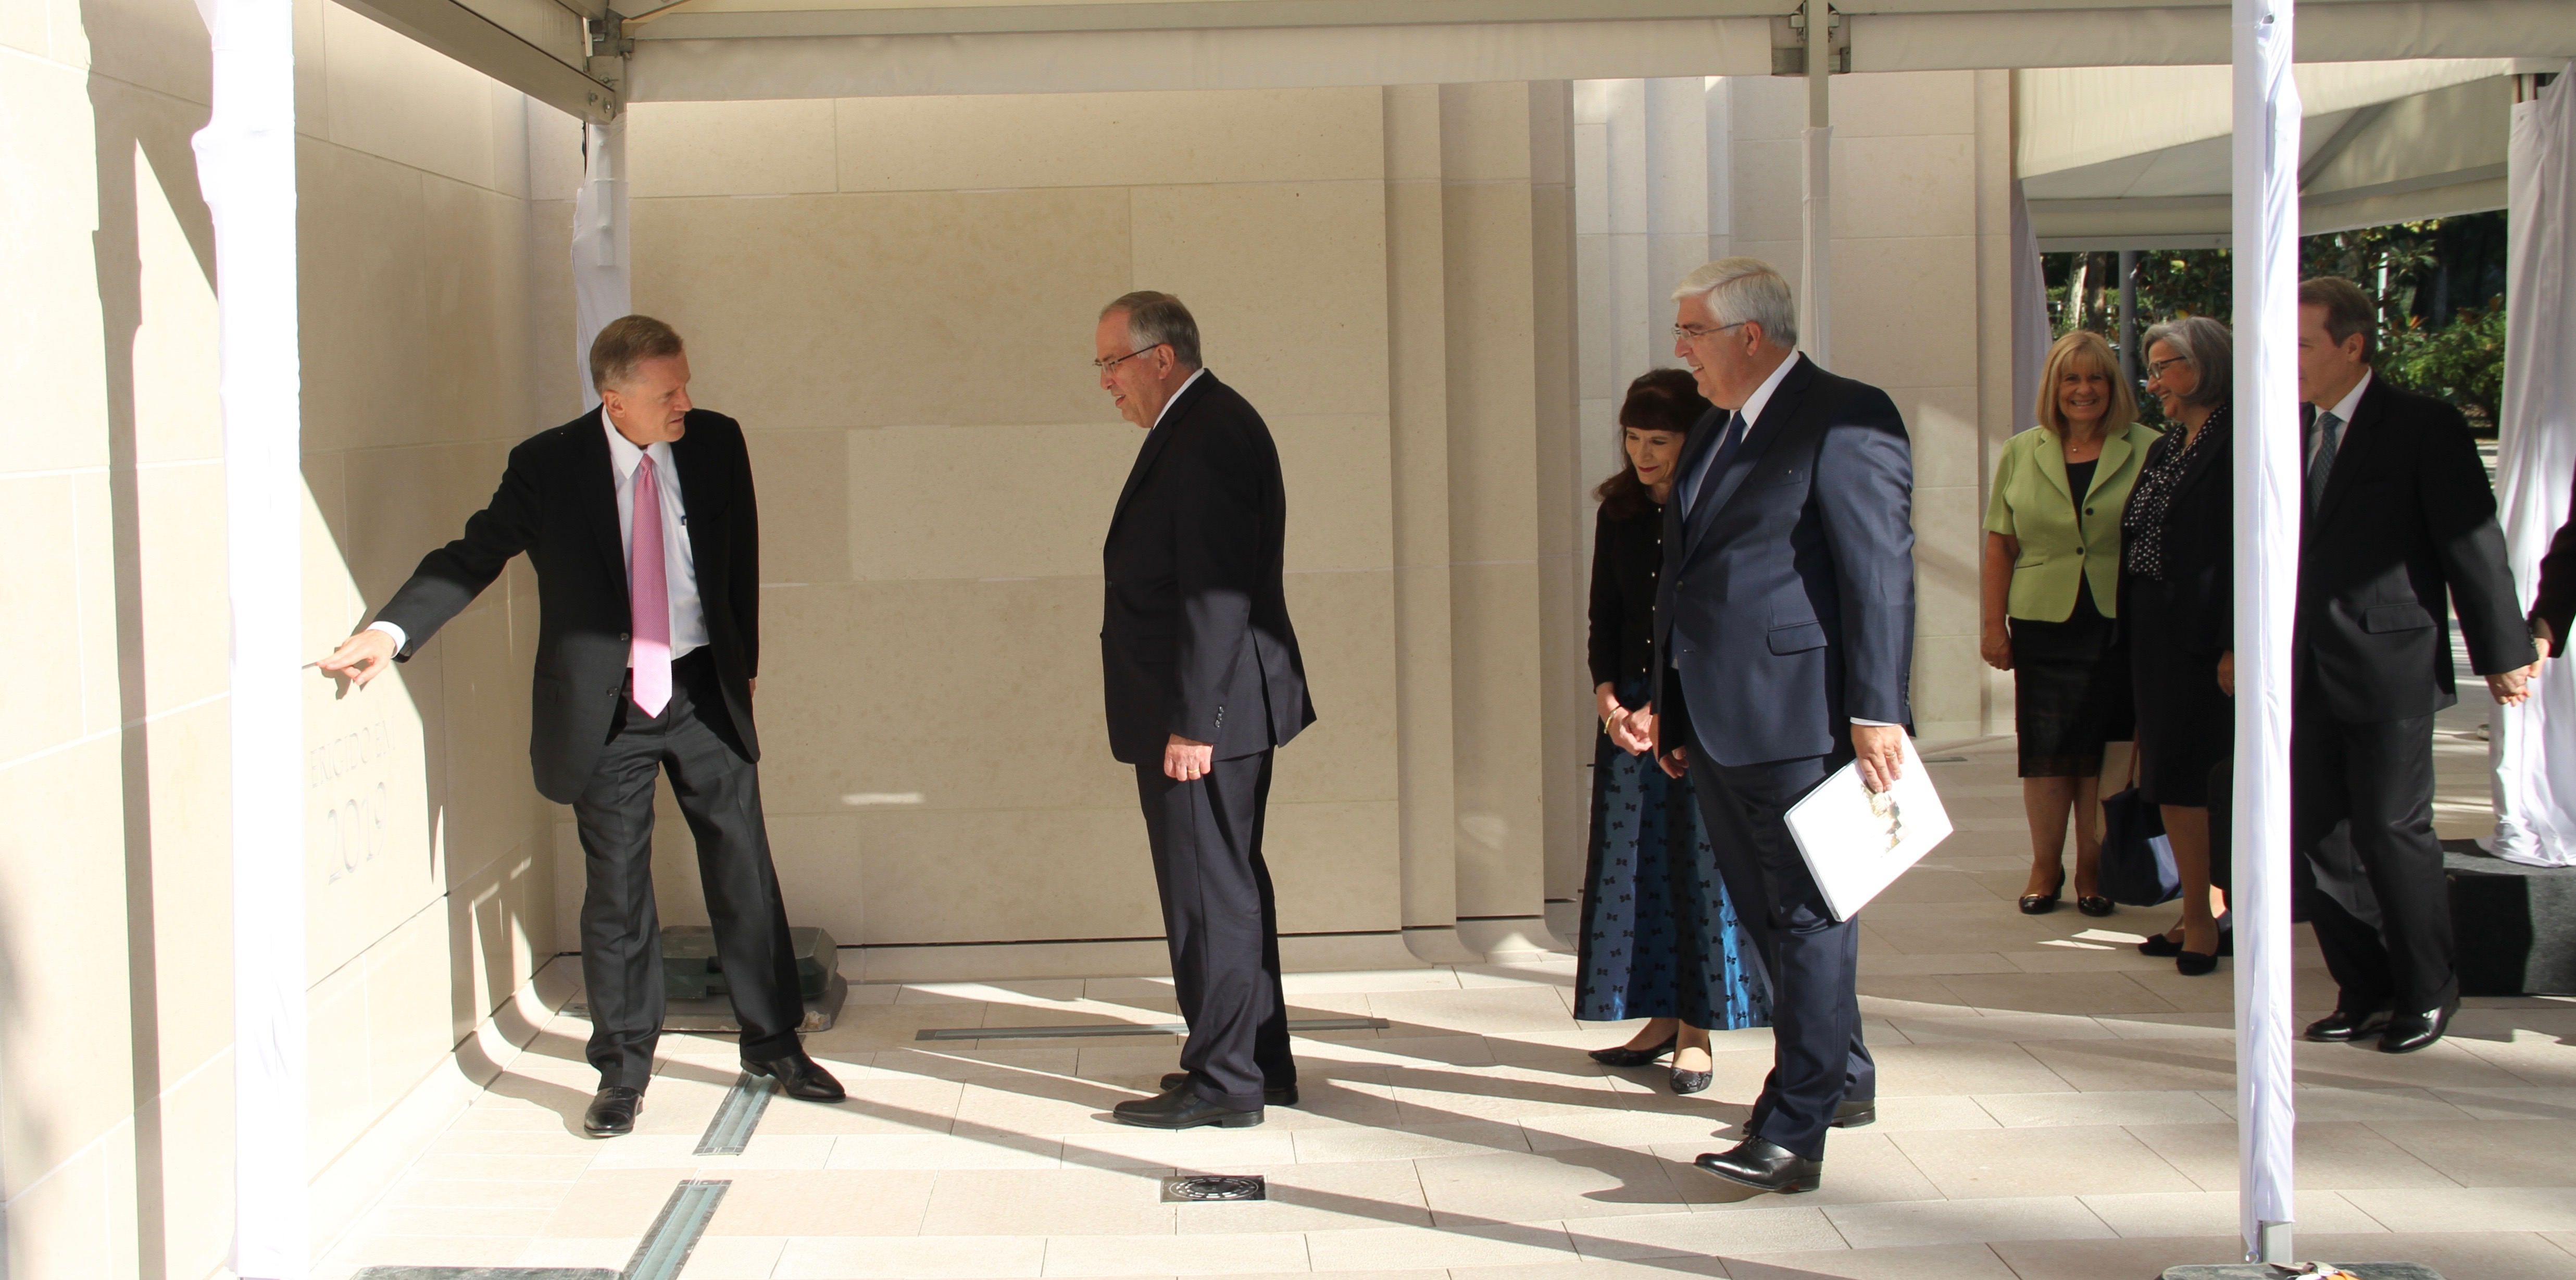 Elder Kevin R. Duncan, left, a General Authority Seventy and executive director of the Temple Department, talks to Elder Neil L. Andersen of the Quorum of the Twelve Apostles about the setup for the upcoming cornerstone ceremony at the Lisbon Portugal Temple following their walk-through of the facility on Saturday, Sept. 14, 2019. Behind them are Sister Kathy Andersen and Elder José A. Teixeira of the Presidency of the Seventy.